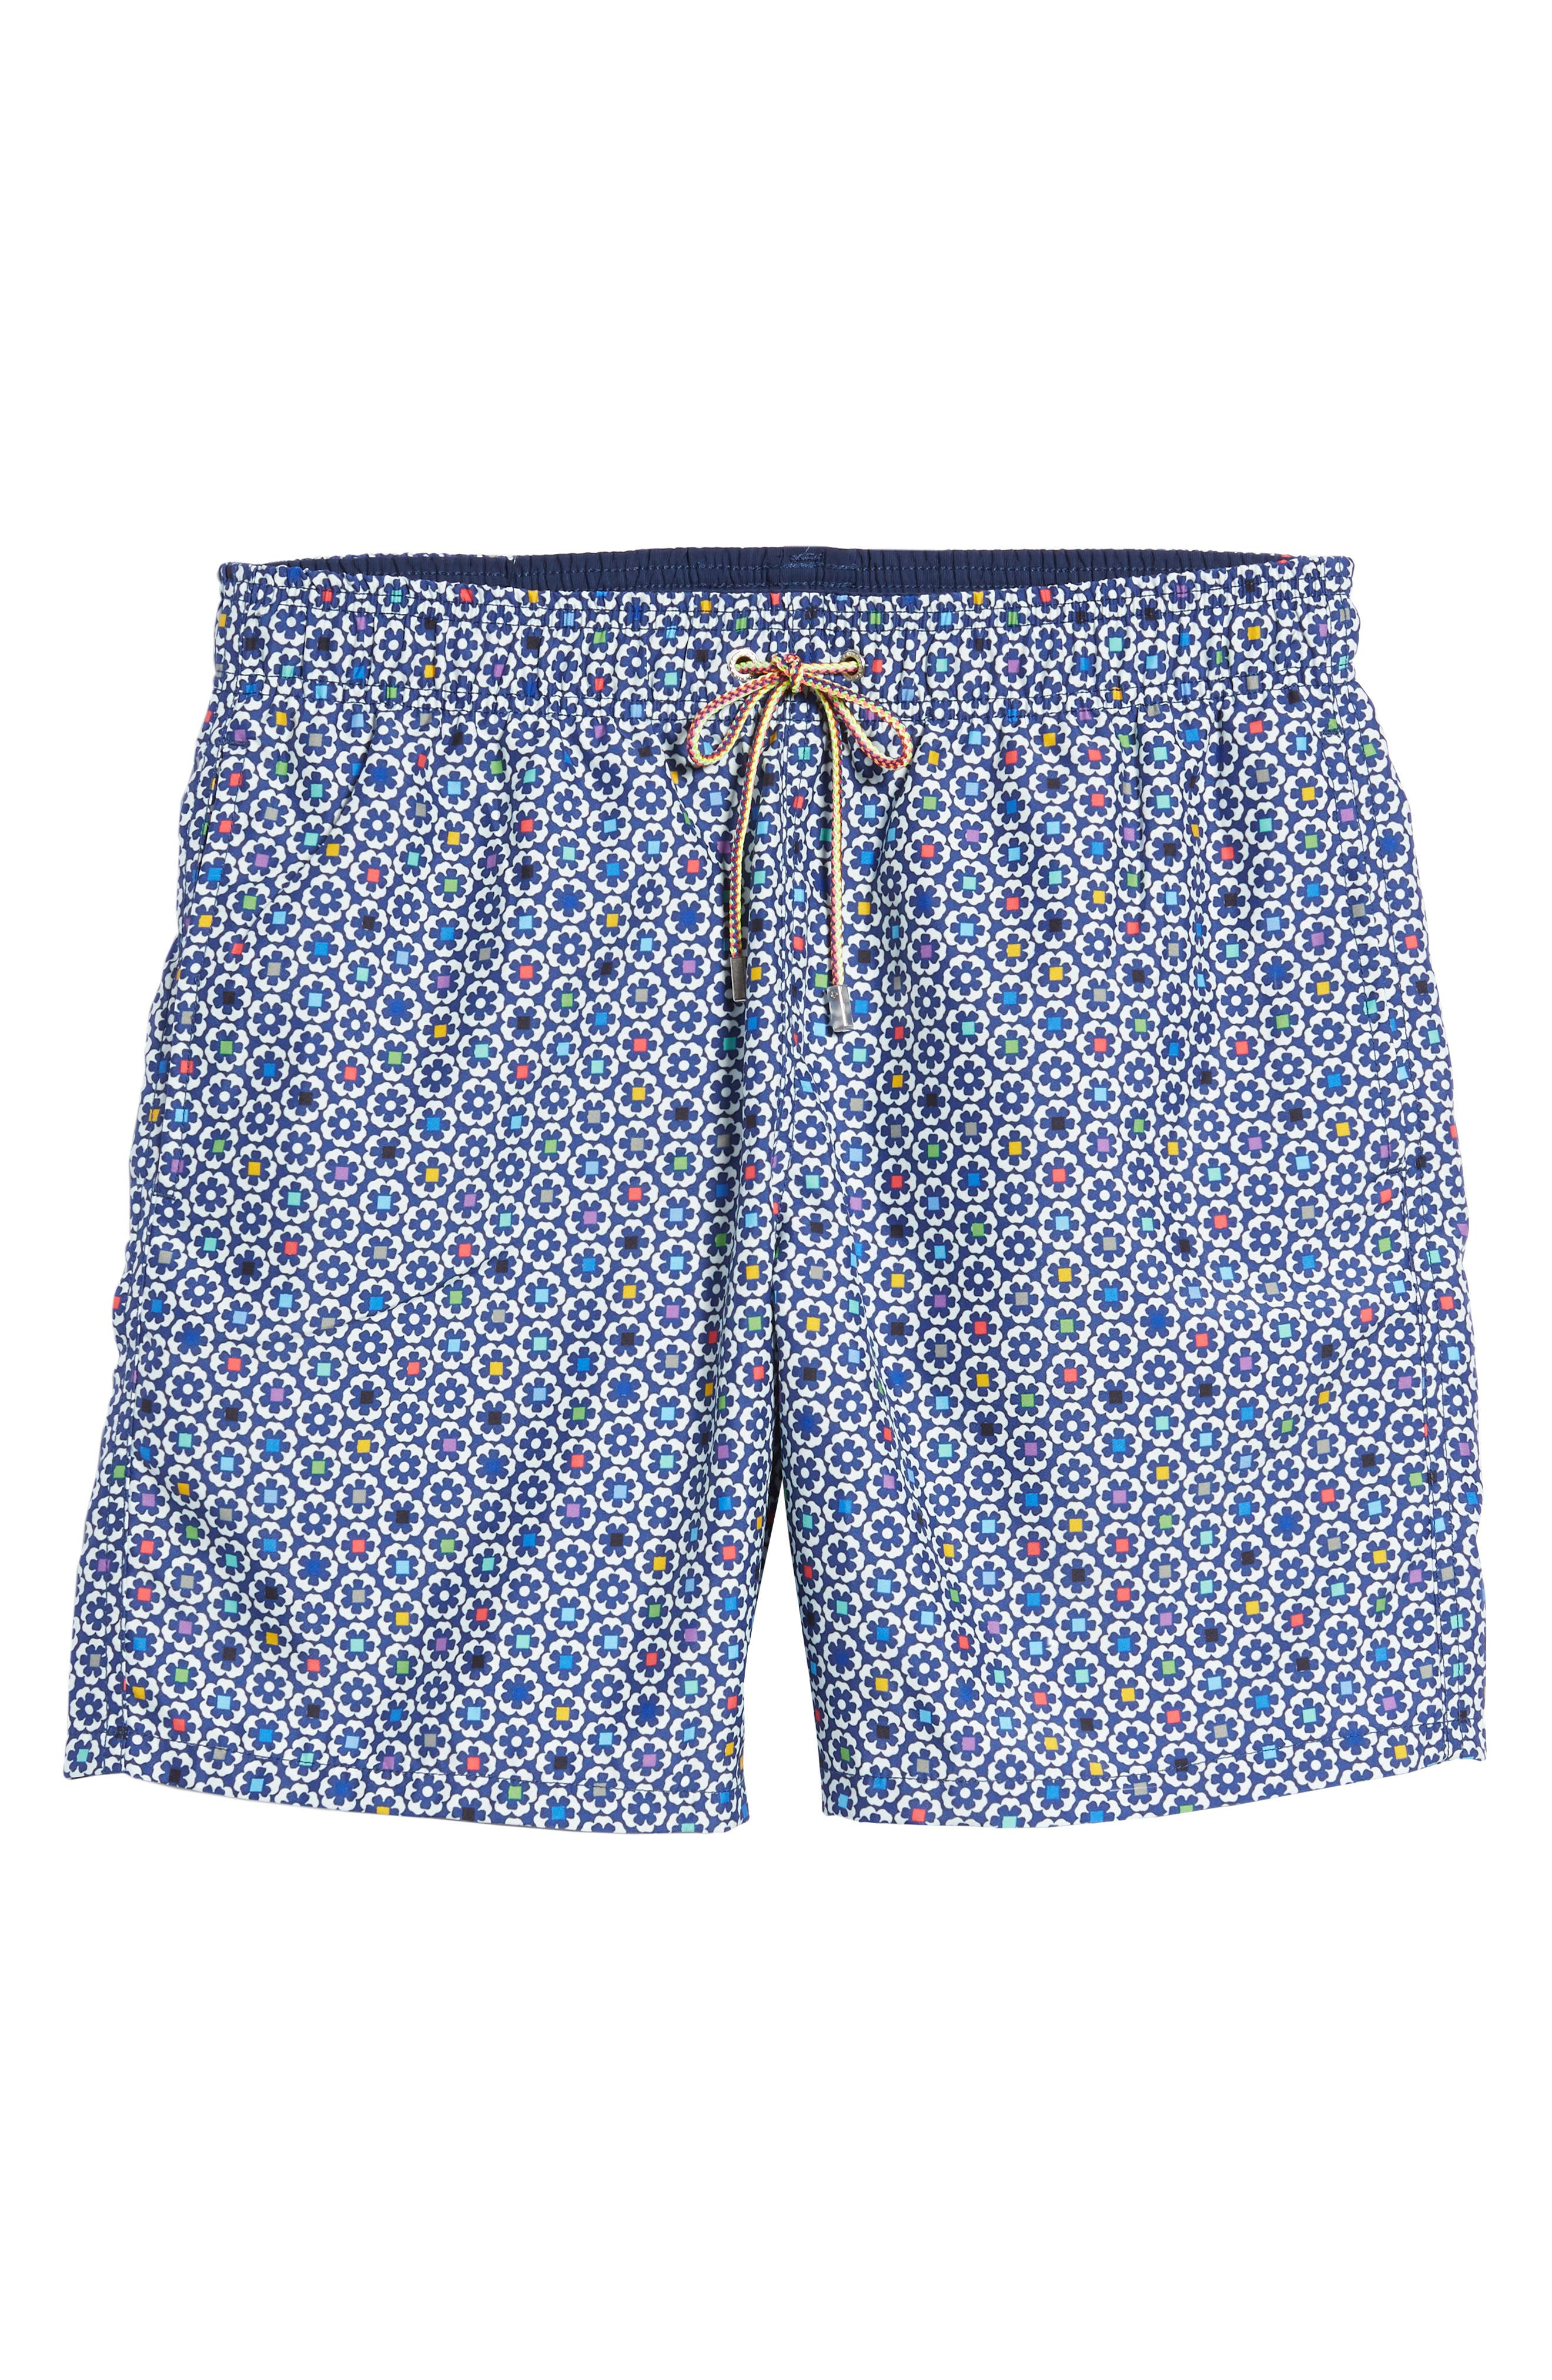 Swim Trunks,                             Alternate thumbnail 6, color,                             411